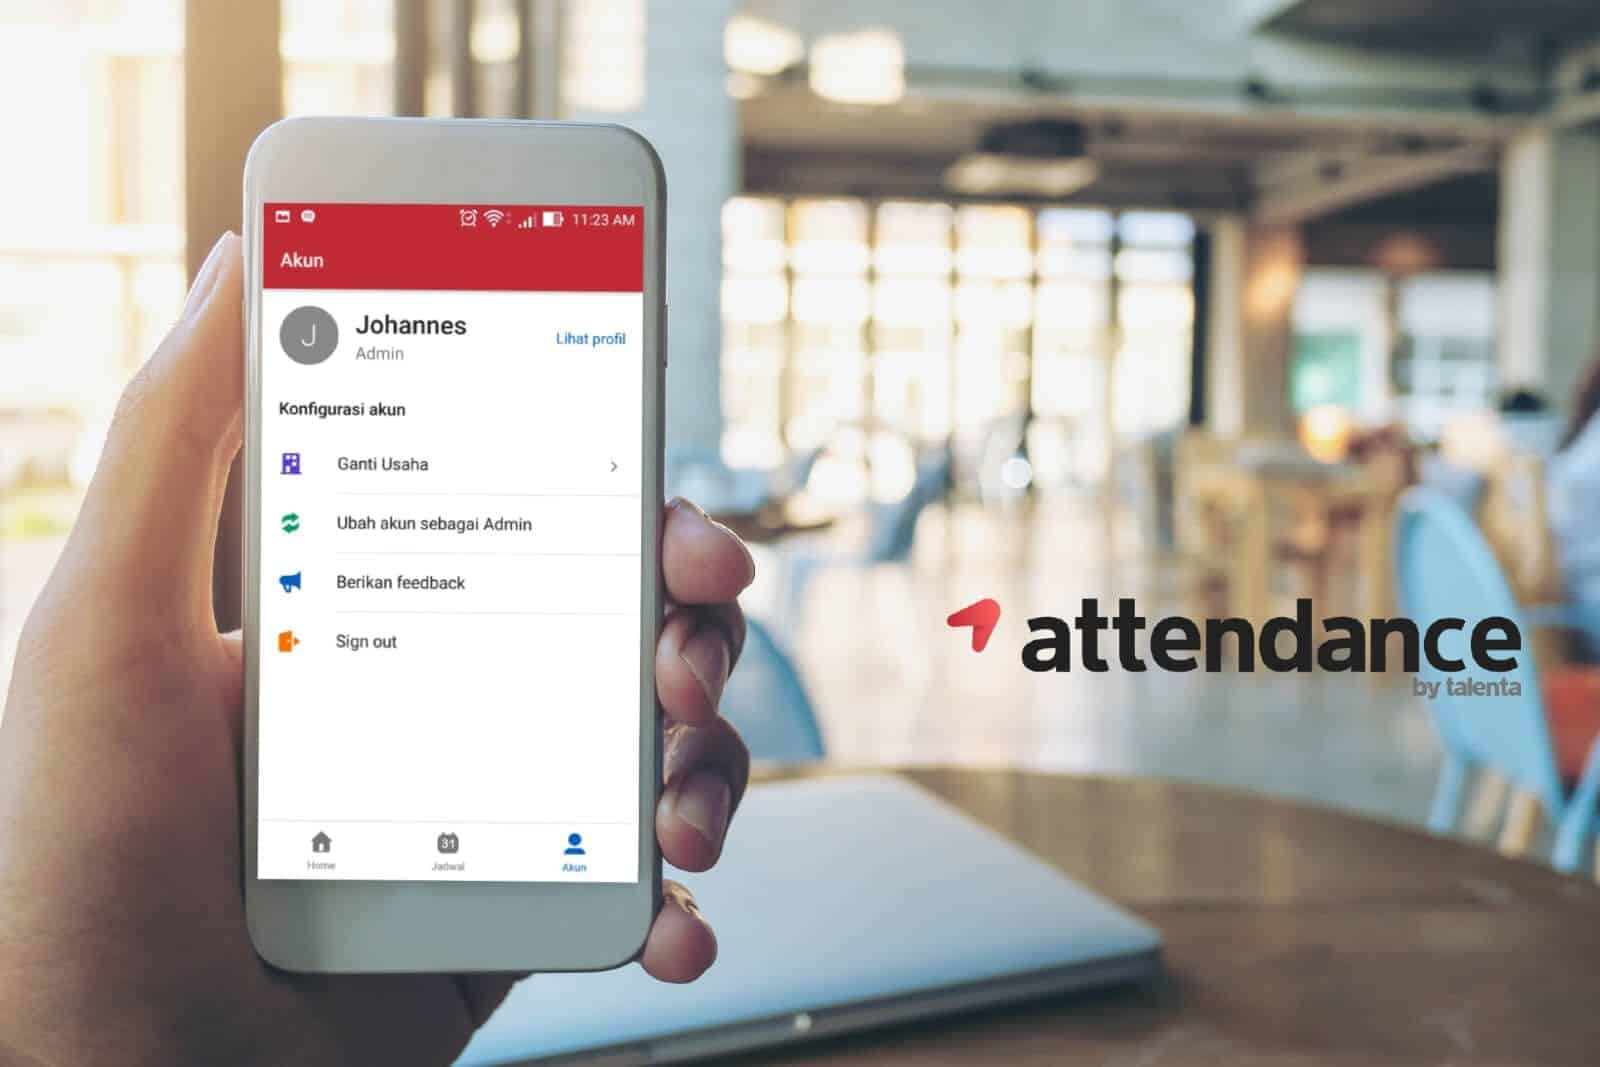 Frequently Asked Questions (FAQ) Attendance by Talenta